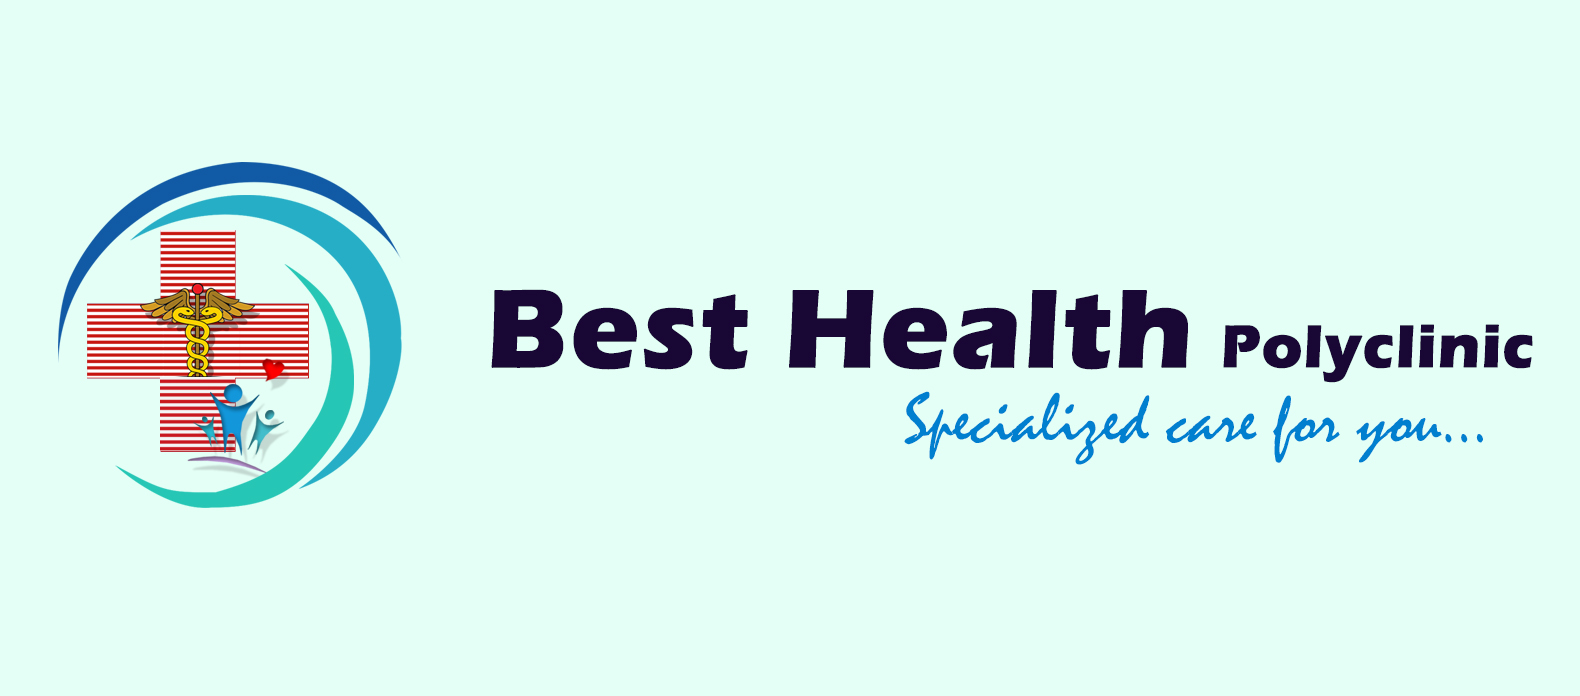 Best Health Polyclinic